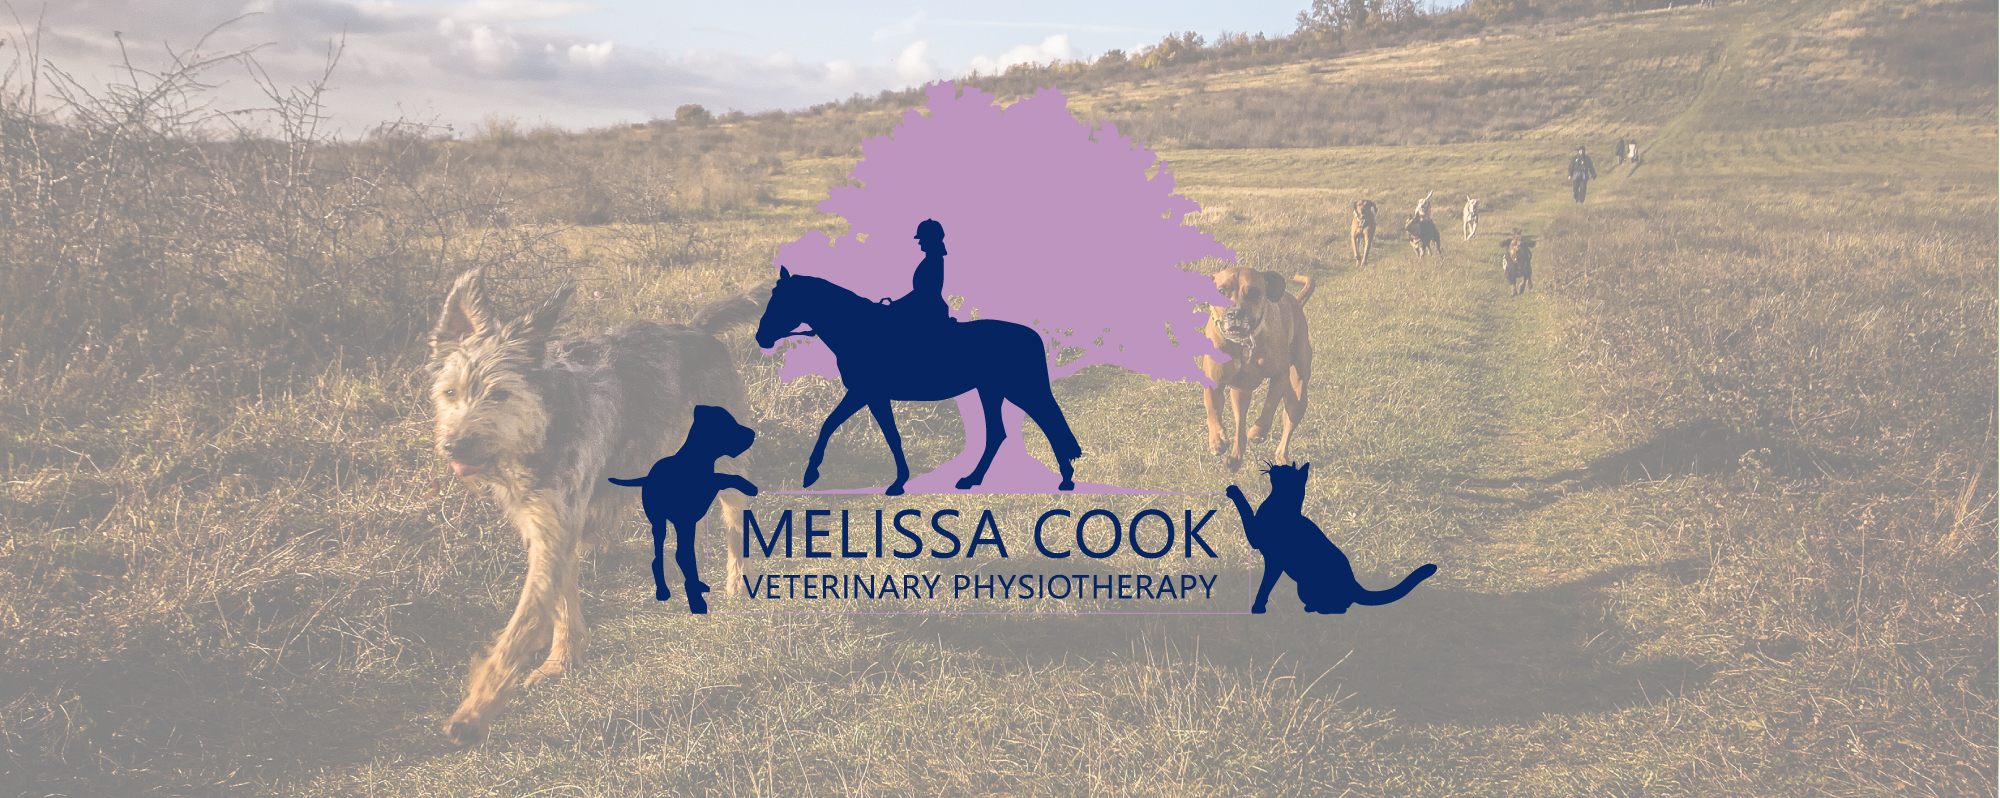 Melissa Cook Veterinary Physiotherapy